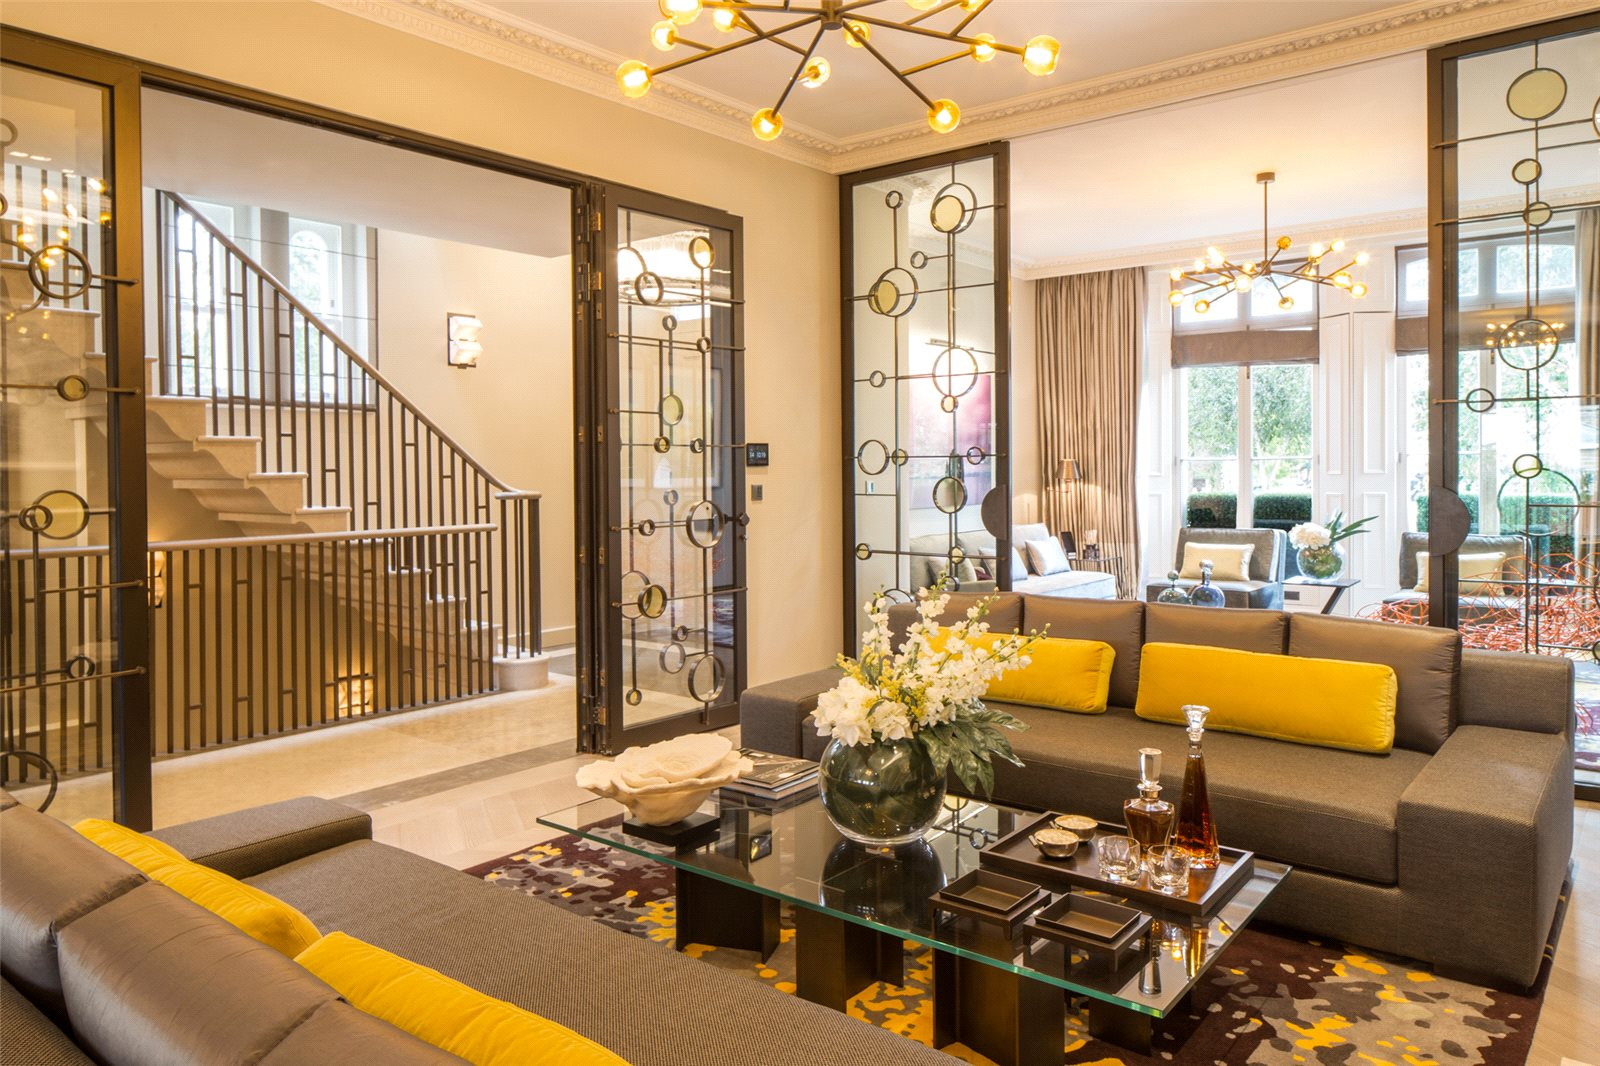 Single Family Home for Sale at Tregunter Road, Chelsea, London, SW10 Chelsea, London, England